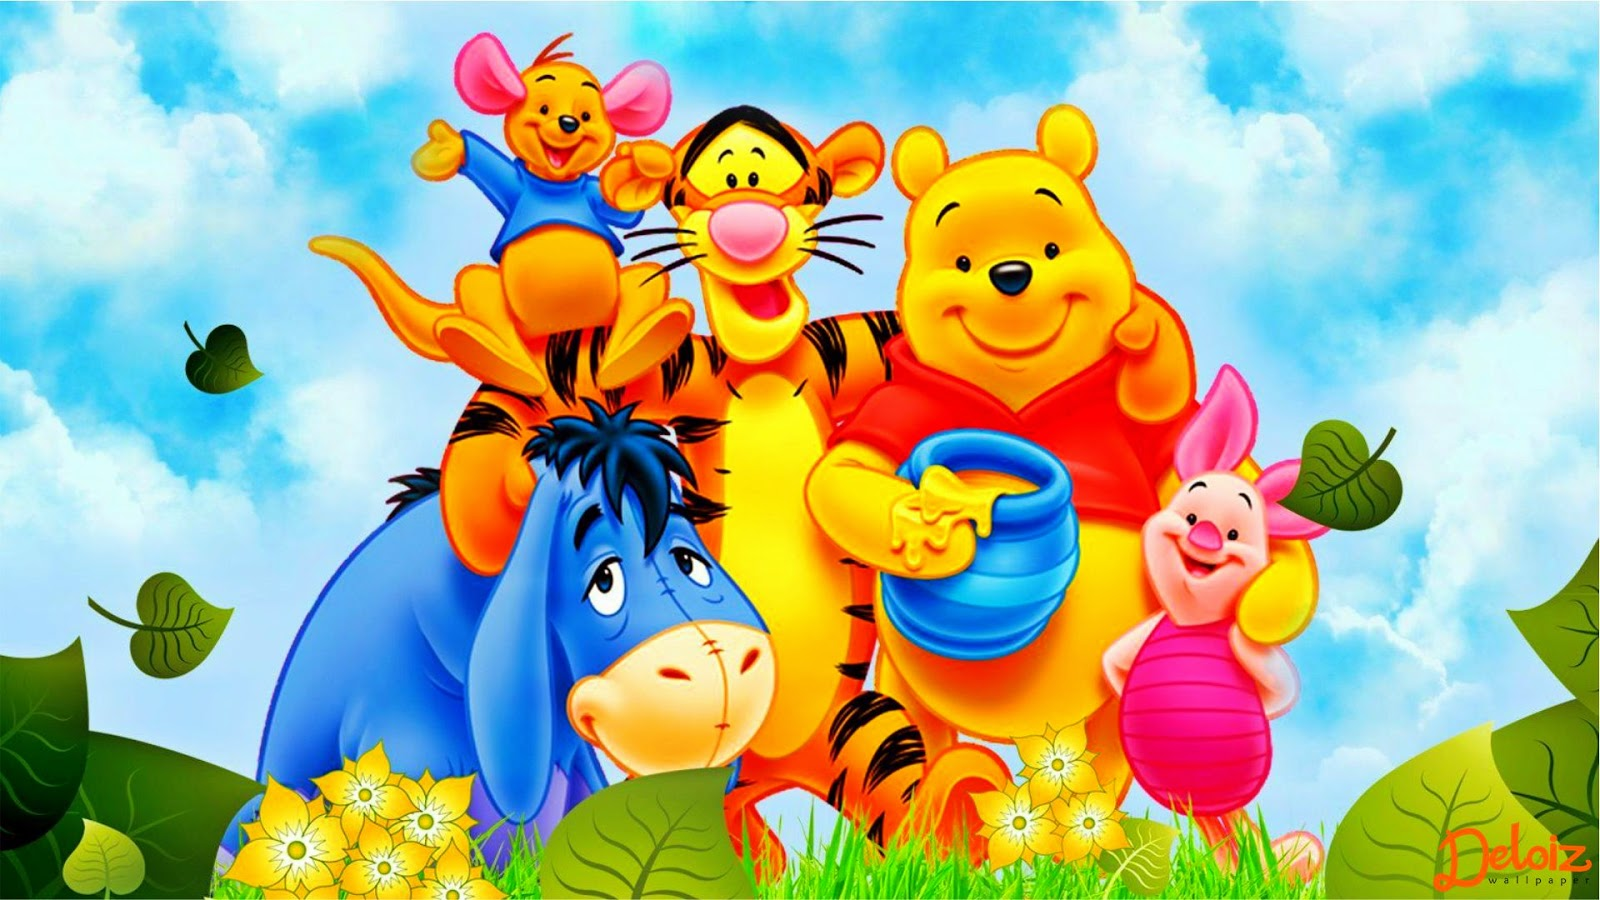 WALLPAPER ANDROID IPHONE Wallpaper Winnie The Pooh HD